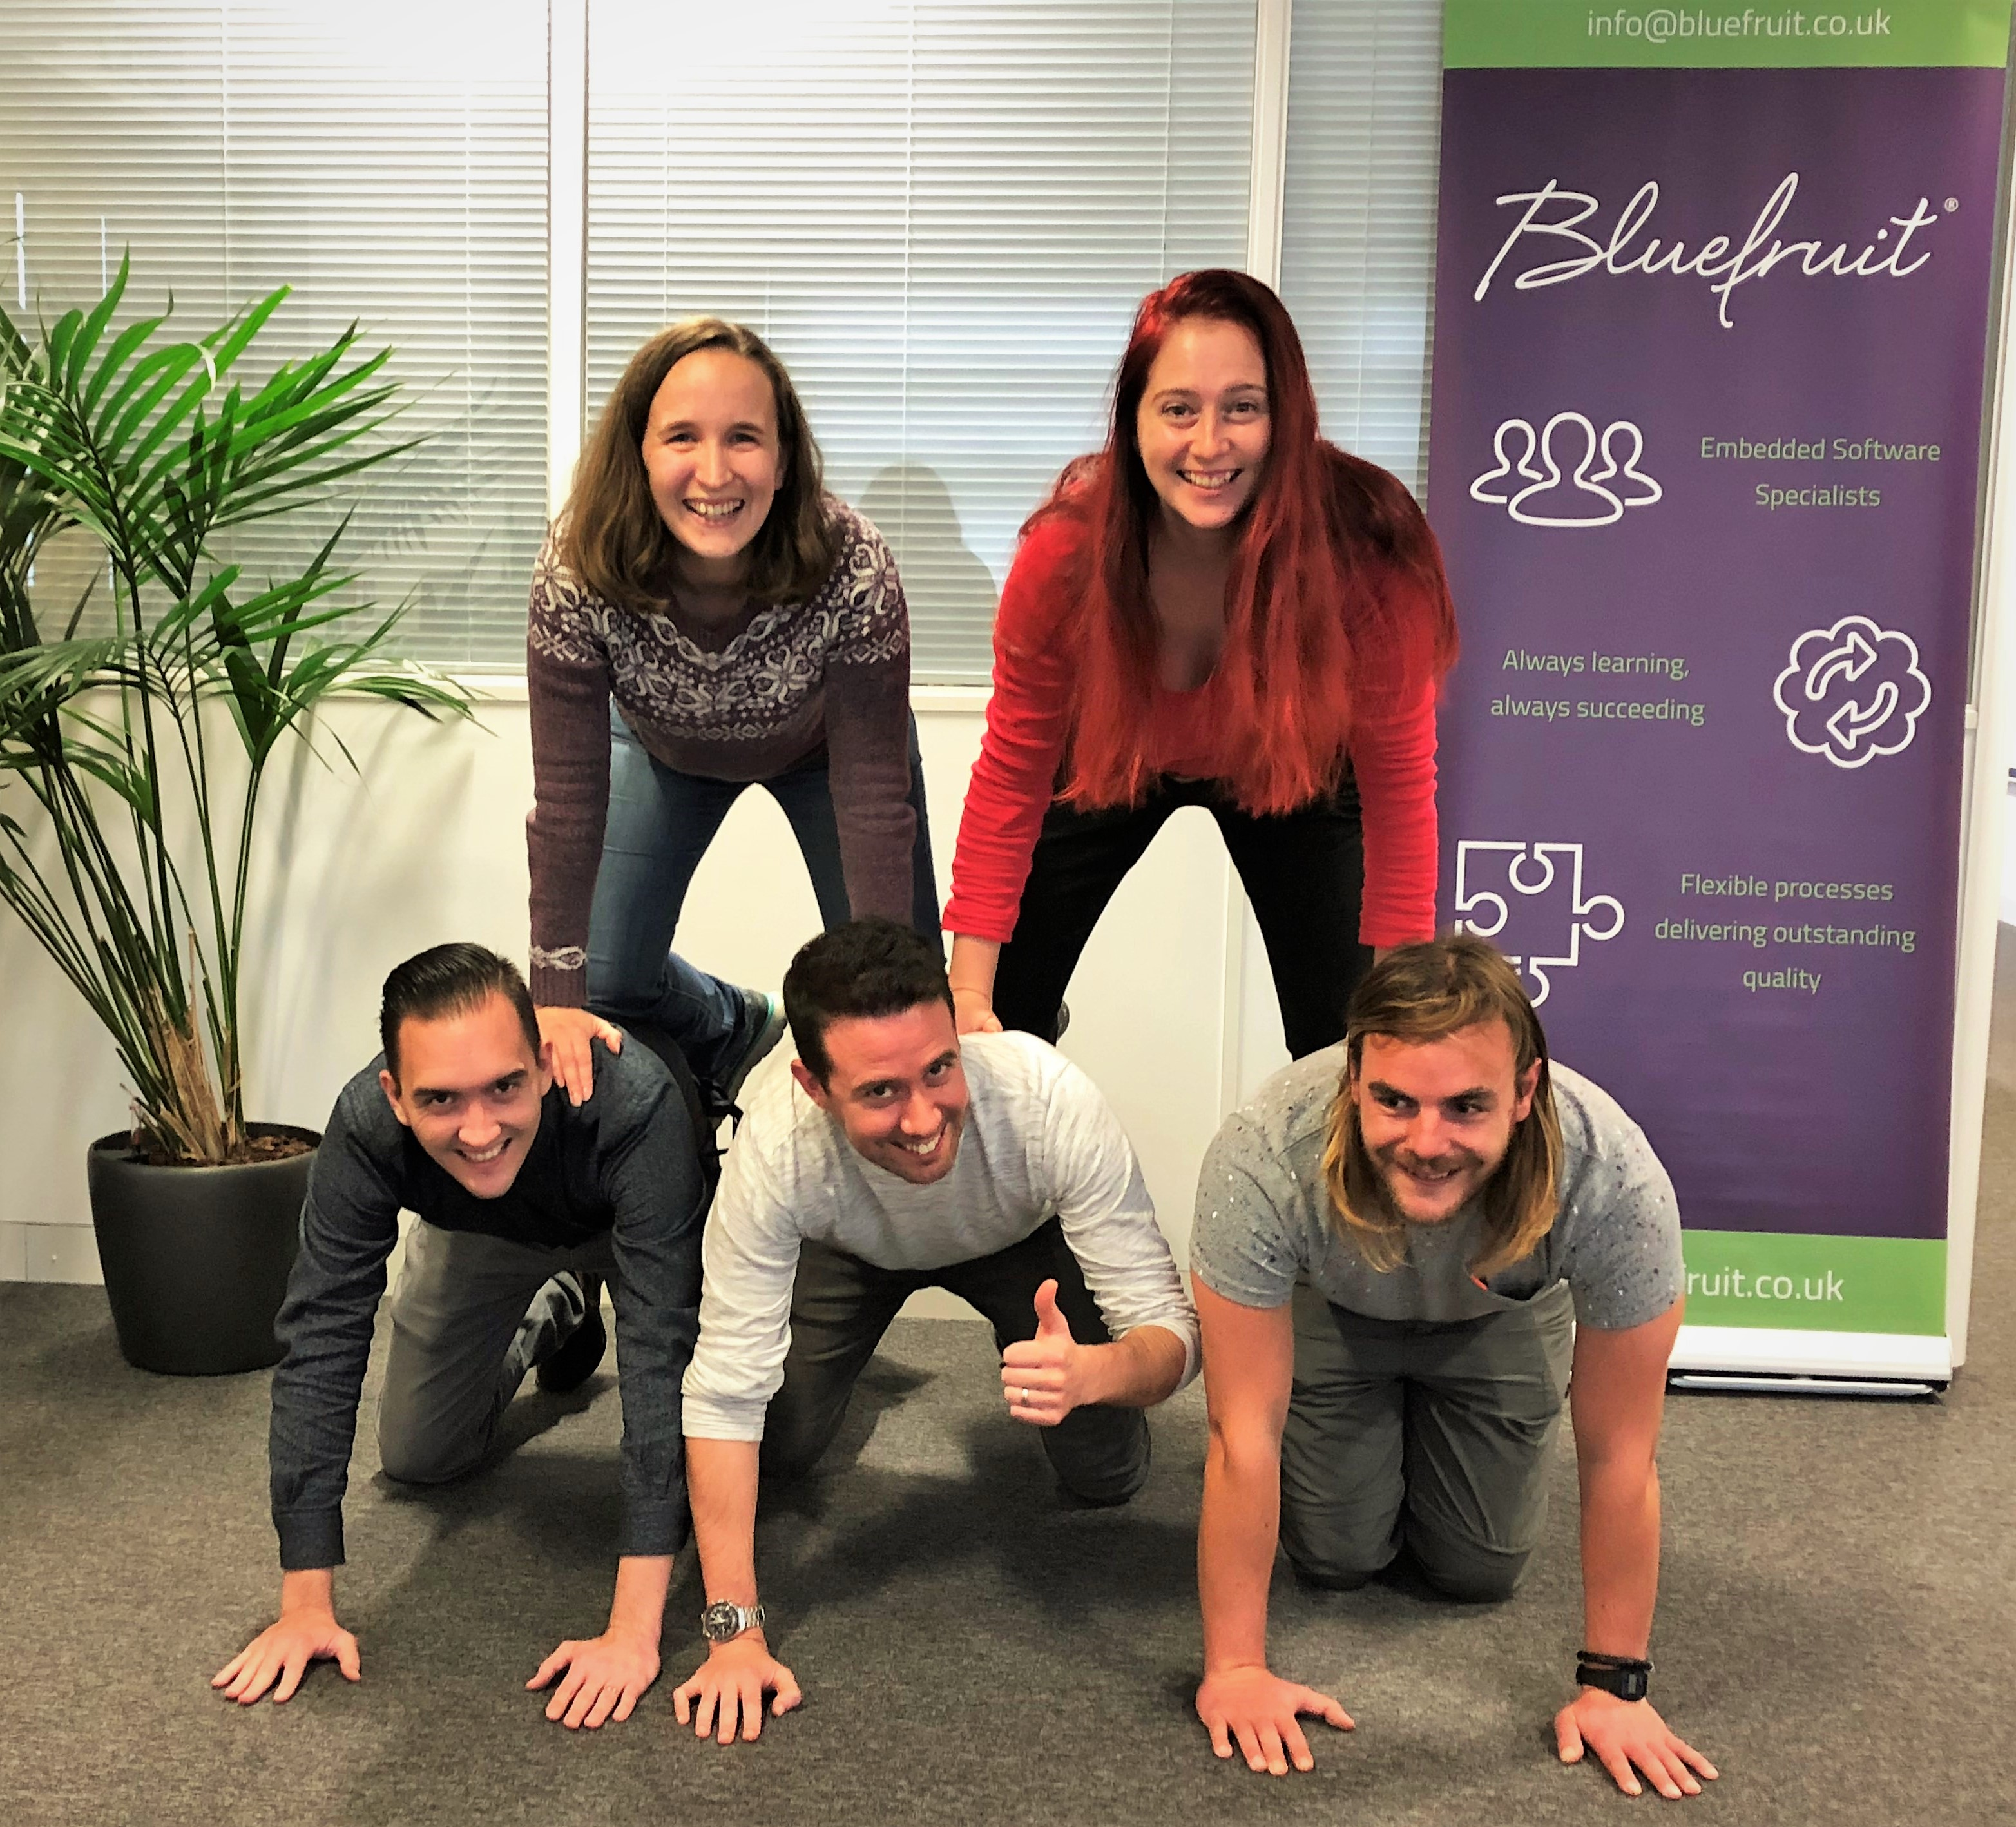 Several Bluefruit colleagues balanced in a human pyramid in the middle of the Bluefruit office.